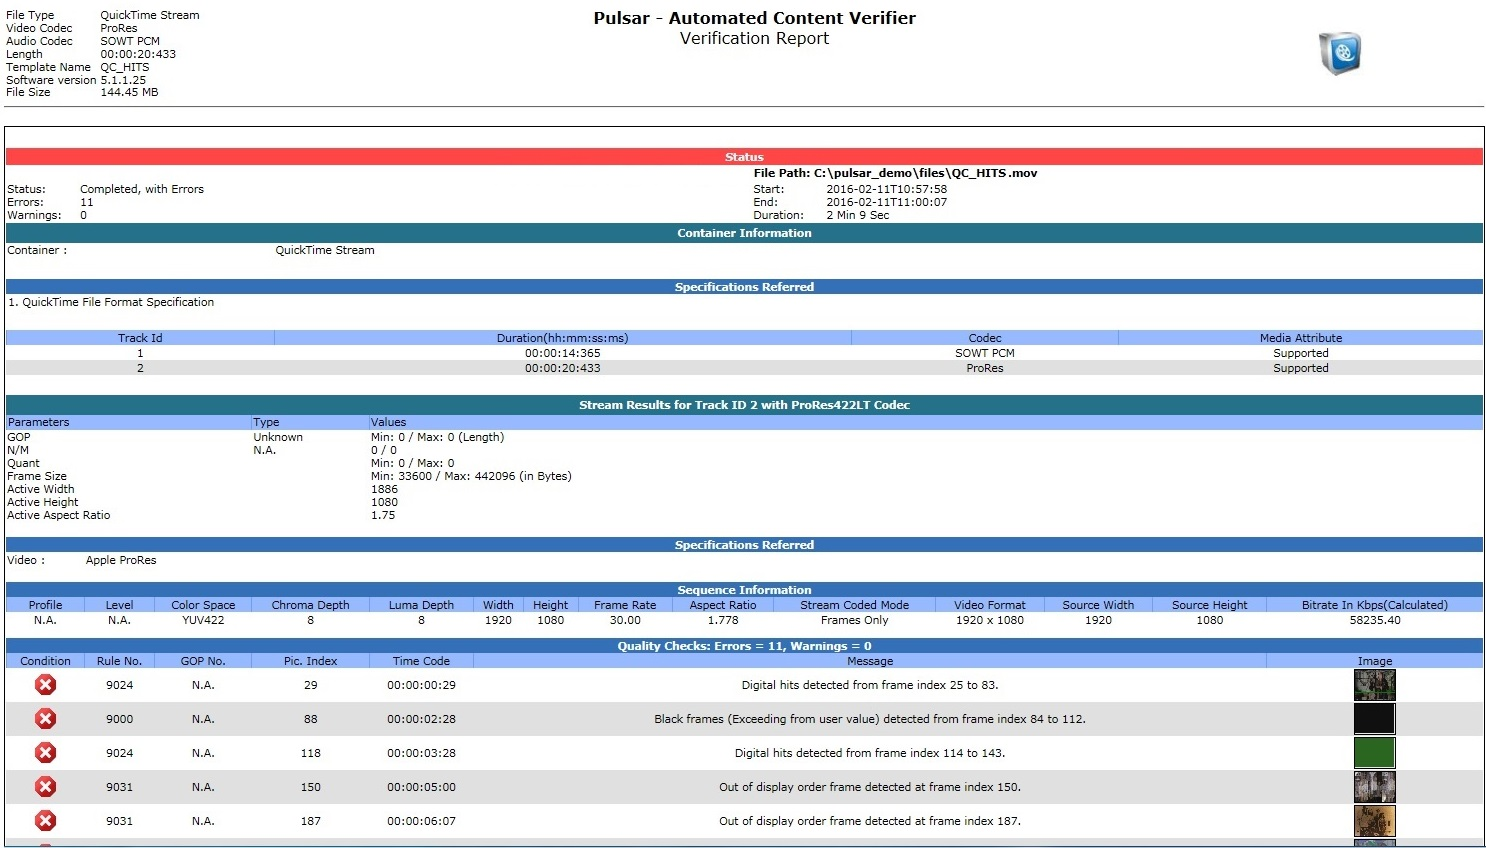 Screenshot - Pulsar Report (5.1.1.27)